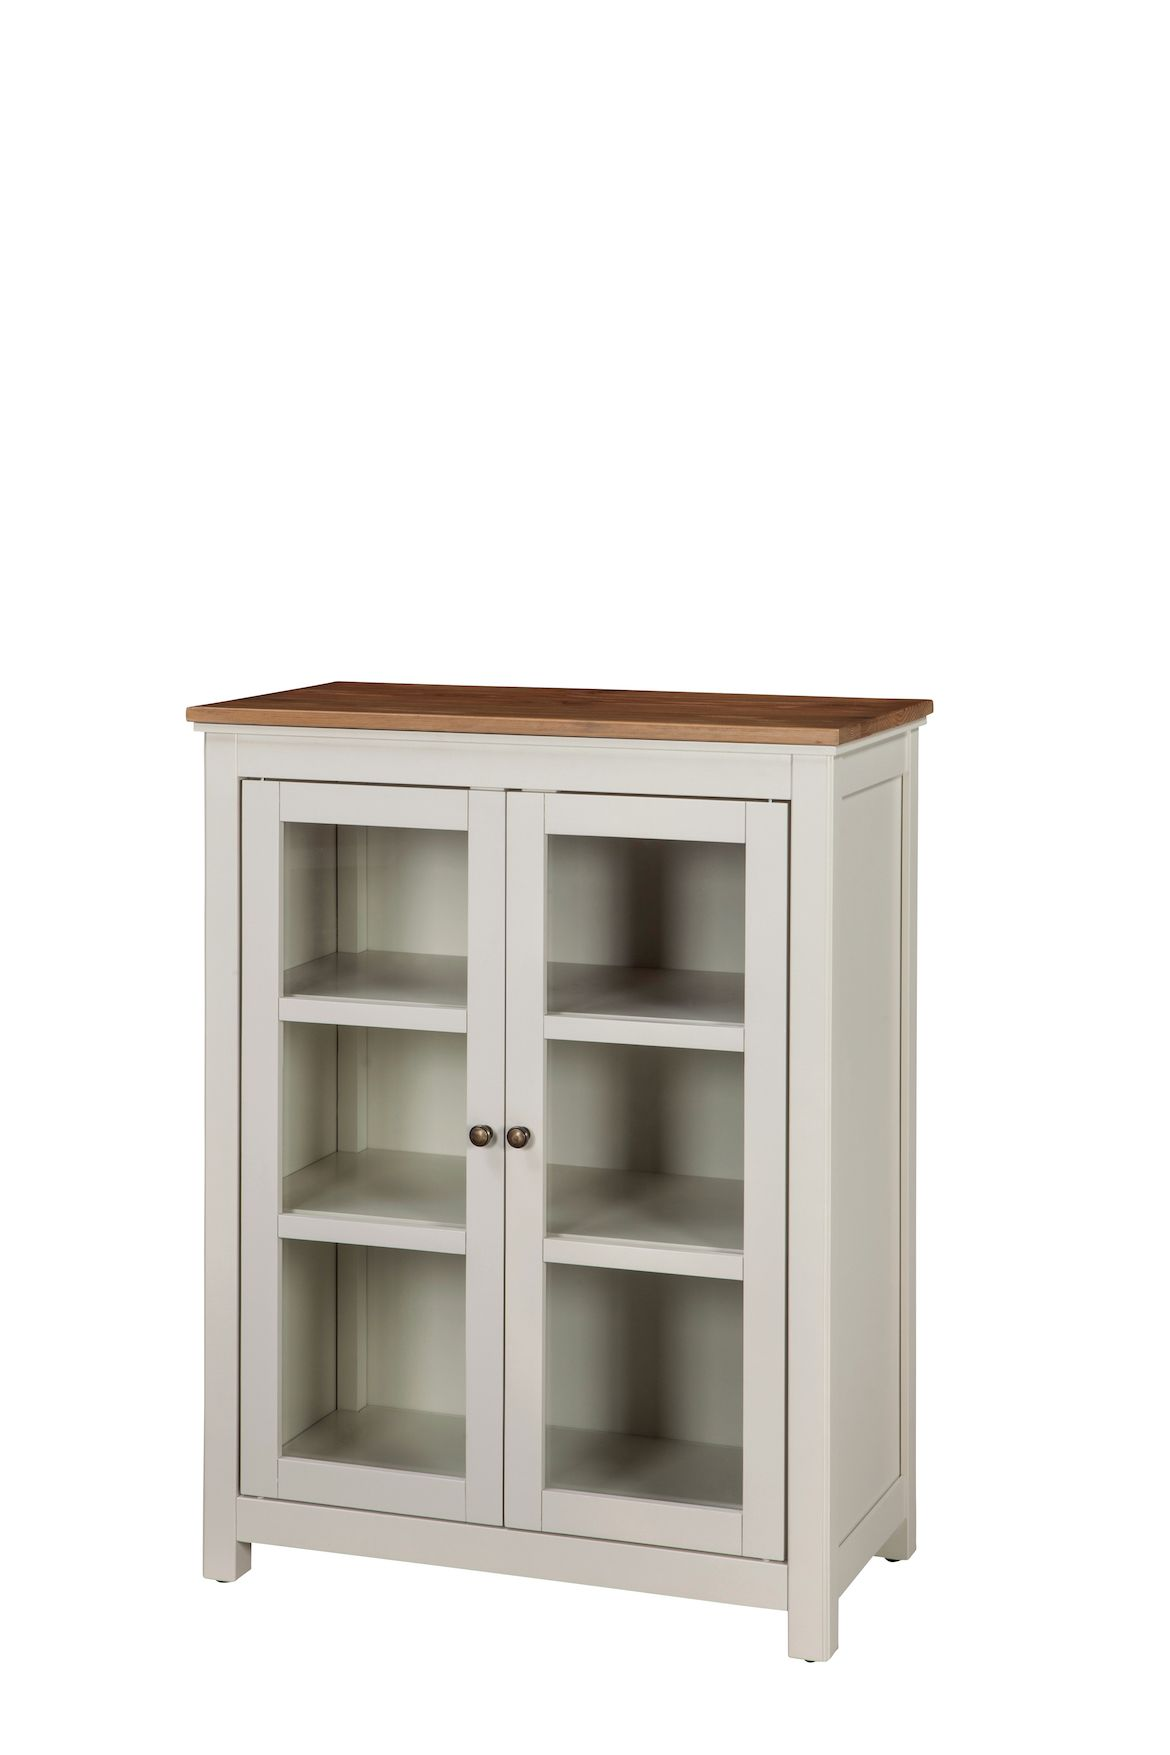 The savannah pie safe will be a handsome addition to your decor the savannah collection features a soft ivory paint accented by a warm wood finish